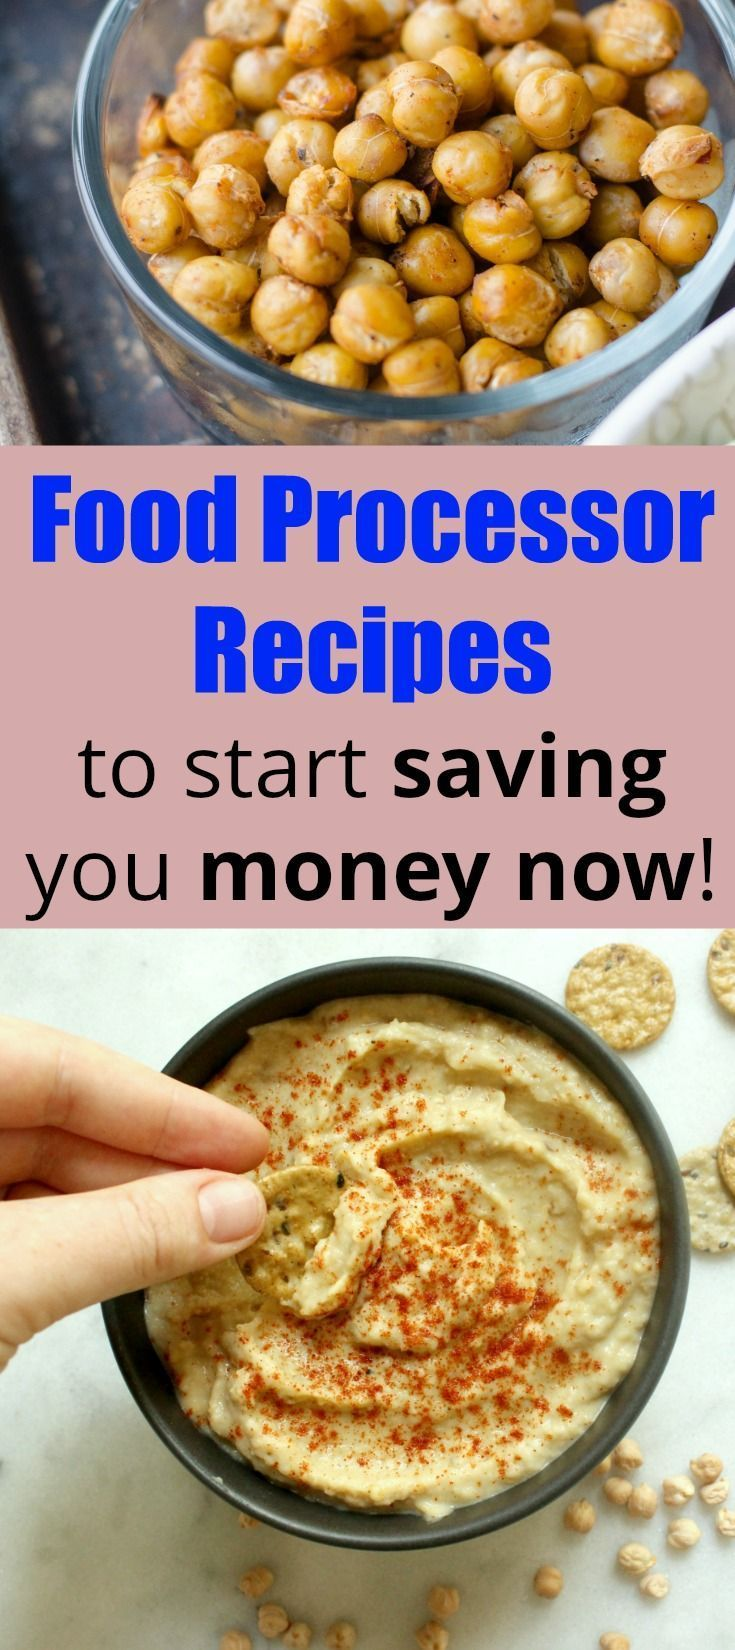 Start saving money now easy food processor recipes best vegan easy food processor recipes best vegan recipes pinterest food processor recipes plant based meals and plant based forumfinder Images